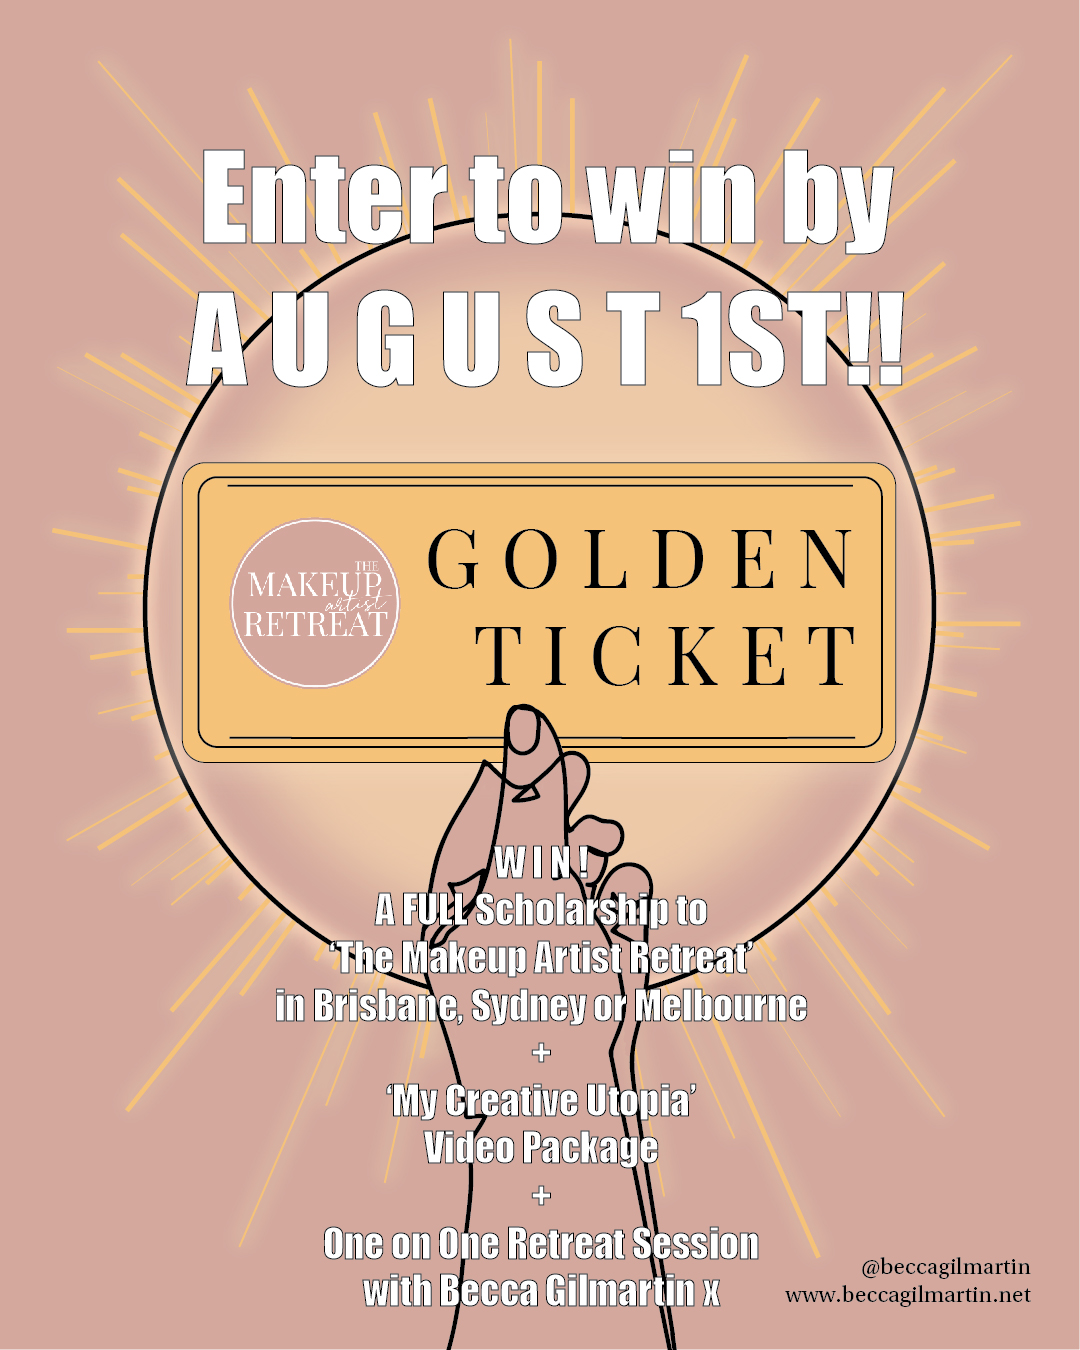 TAG POST WIN!   To celebrate @beccagilmartin 's favourite creation to date - @themakeupartistretreat - she has created a GOLDEN TICKET for one lucky artist to be a guest in every class in their capital city! ENTRY DETAILS BELOW  The #beautygoldenticket includes:   - Your place in a 2 day Makeup Artist Retreat in either Sydney, Melbourne or Brisbane   - A triple pass to a Mini Makeup Artist Retreat!  - Be one of the first to receive the 'My Creative Utopia' Video Package!  - AND a one on one online Retreat session with Becca post your MUA Retreat   How to enter:  1 - TAG your two MUA BFFs in this post 2 - FOLLOW @themakeupartistretreat @beccagilmartin  3 - POST on your feed your favourite image of your work, tag #beautygoldenticket #themakeupartistretreat and @themakeupartistretreat explaining why this image is your favourite piece of work Winner announced August 2nd 2019 Australian time x    www.beccagilmartin.net  for event details! G O O D L U C K *competition open to any artist globally however would be responsible for their own travel and accommodation should they live outside Scheduled cities. Winner chosen by Becca and contacted via #instagram #australianmakeupartist #makeupcompetition #themakeupartistretreat #sydneymakeupartists #melbournemakeupartists #brisbanemakeupartists #beccagilmartin #beautygoldenticket #win #prize #goldenticket #illustration #artistselfcare #selfcare #careerconfidence #creativemakeupartist #makeuptutorial #makeup #love #instacompetition #instacomp